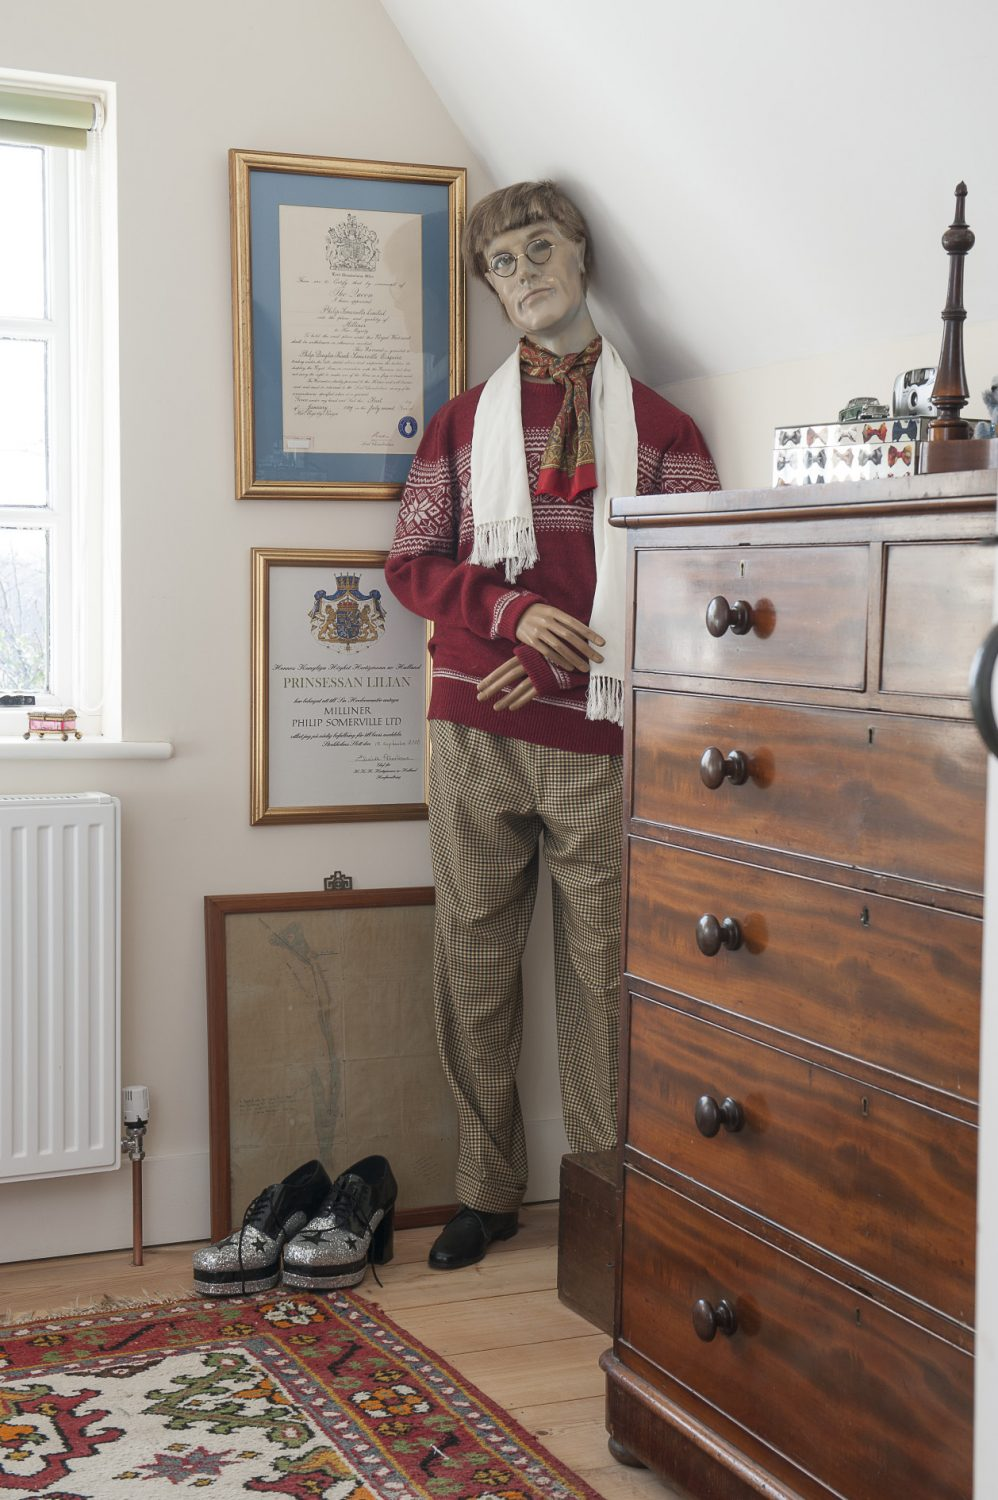 One of the spare rooms is home to another mannequin, called Charlie